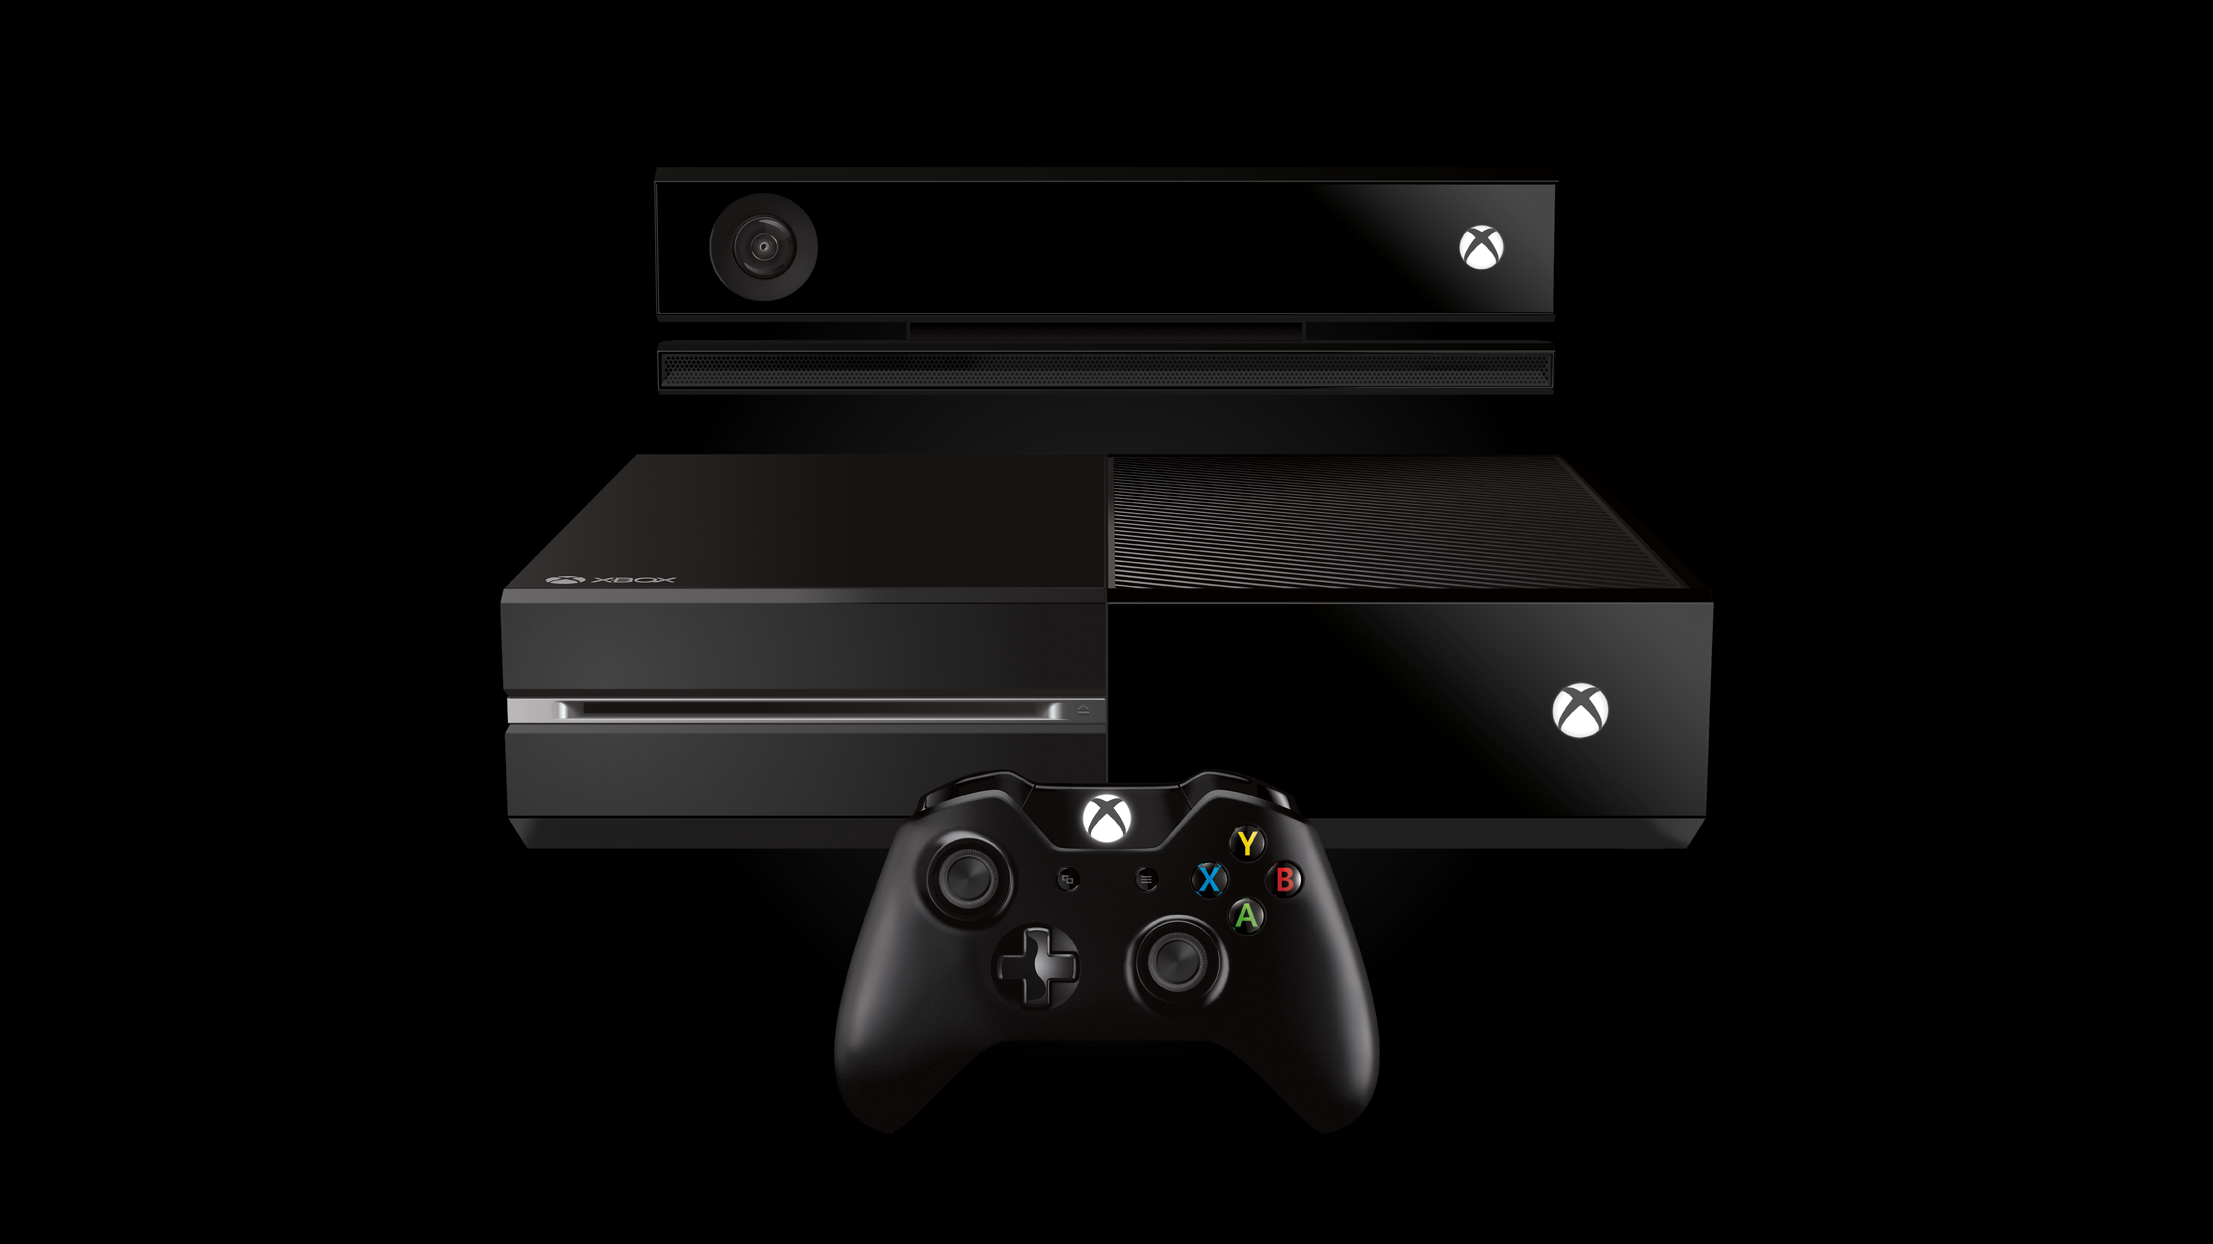 The Next Xbox: Xbox One